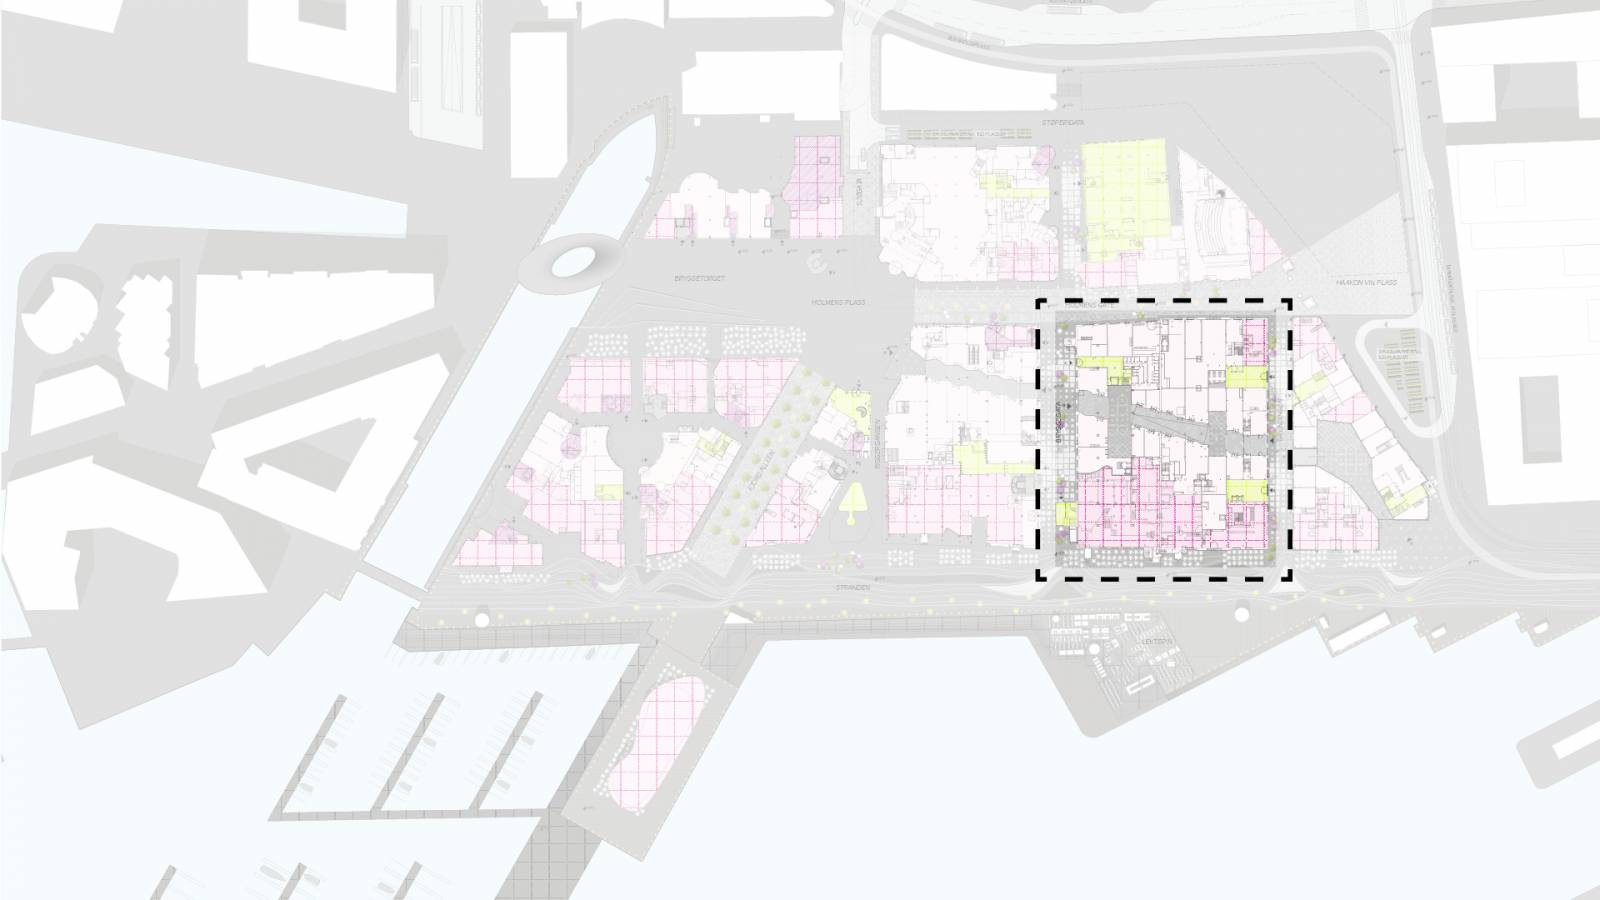 MASTERPLAN LOCATION - Akers Mek Verksted - SPOL Architects